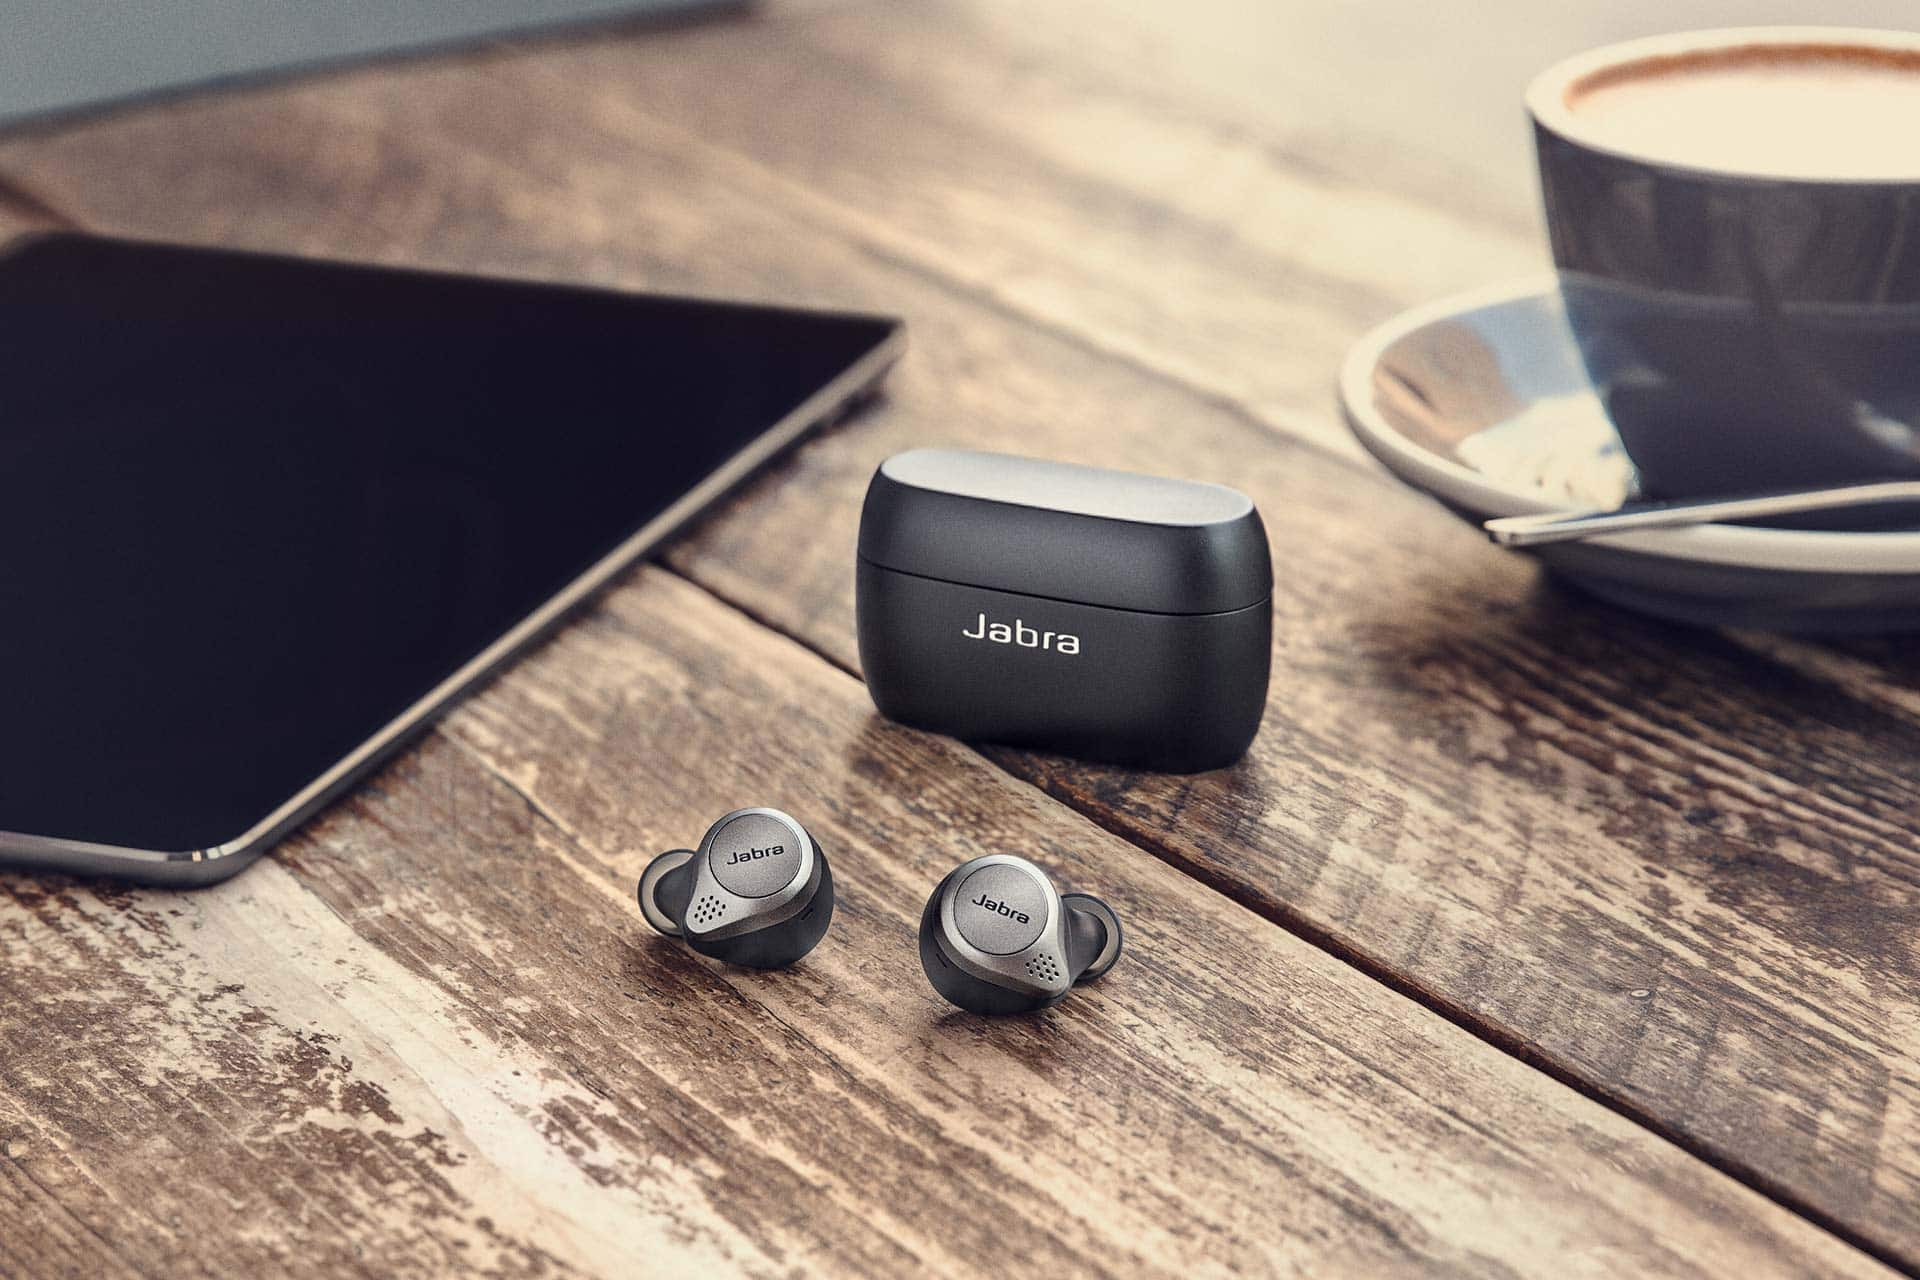 Jabra Elite 75t Review A Fitness Junkies Dream Pair Of True Wireless Earbuds With Exceptional Battery Life